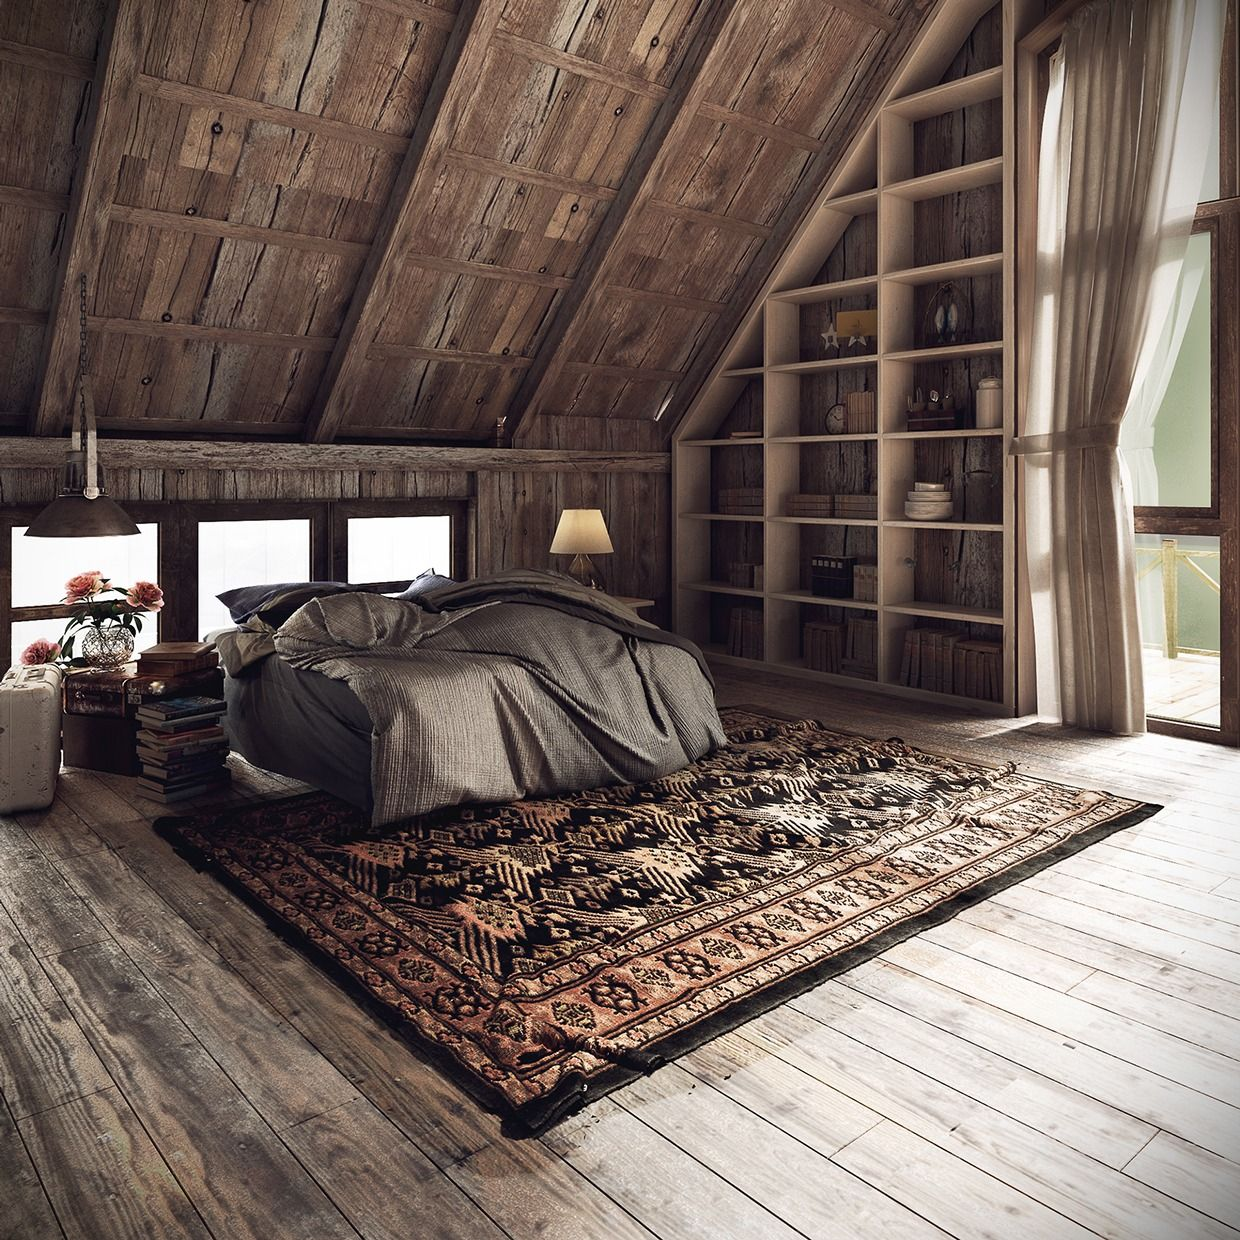 Luxury on more our new home pinterest rustic industrial